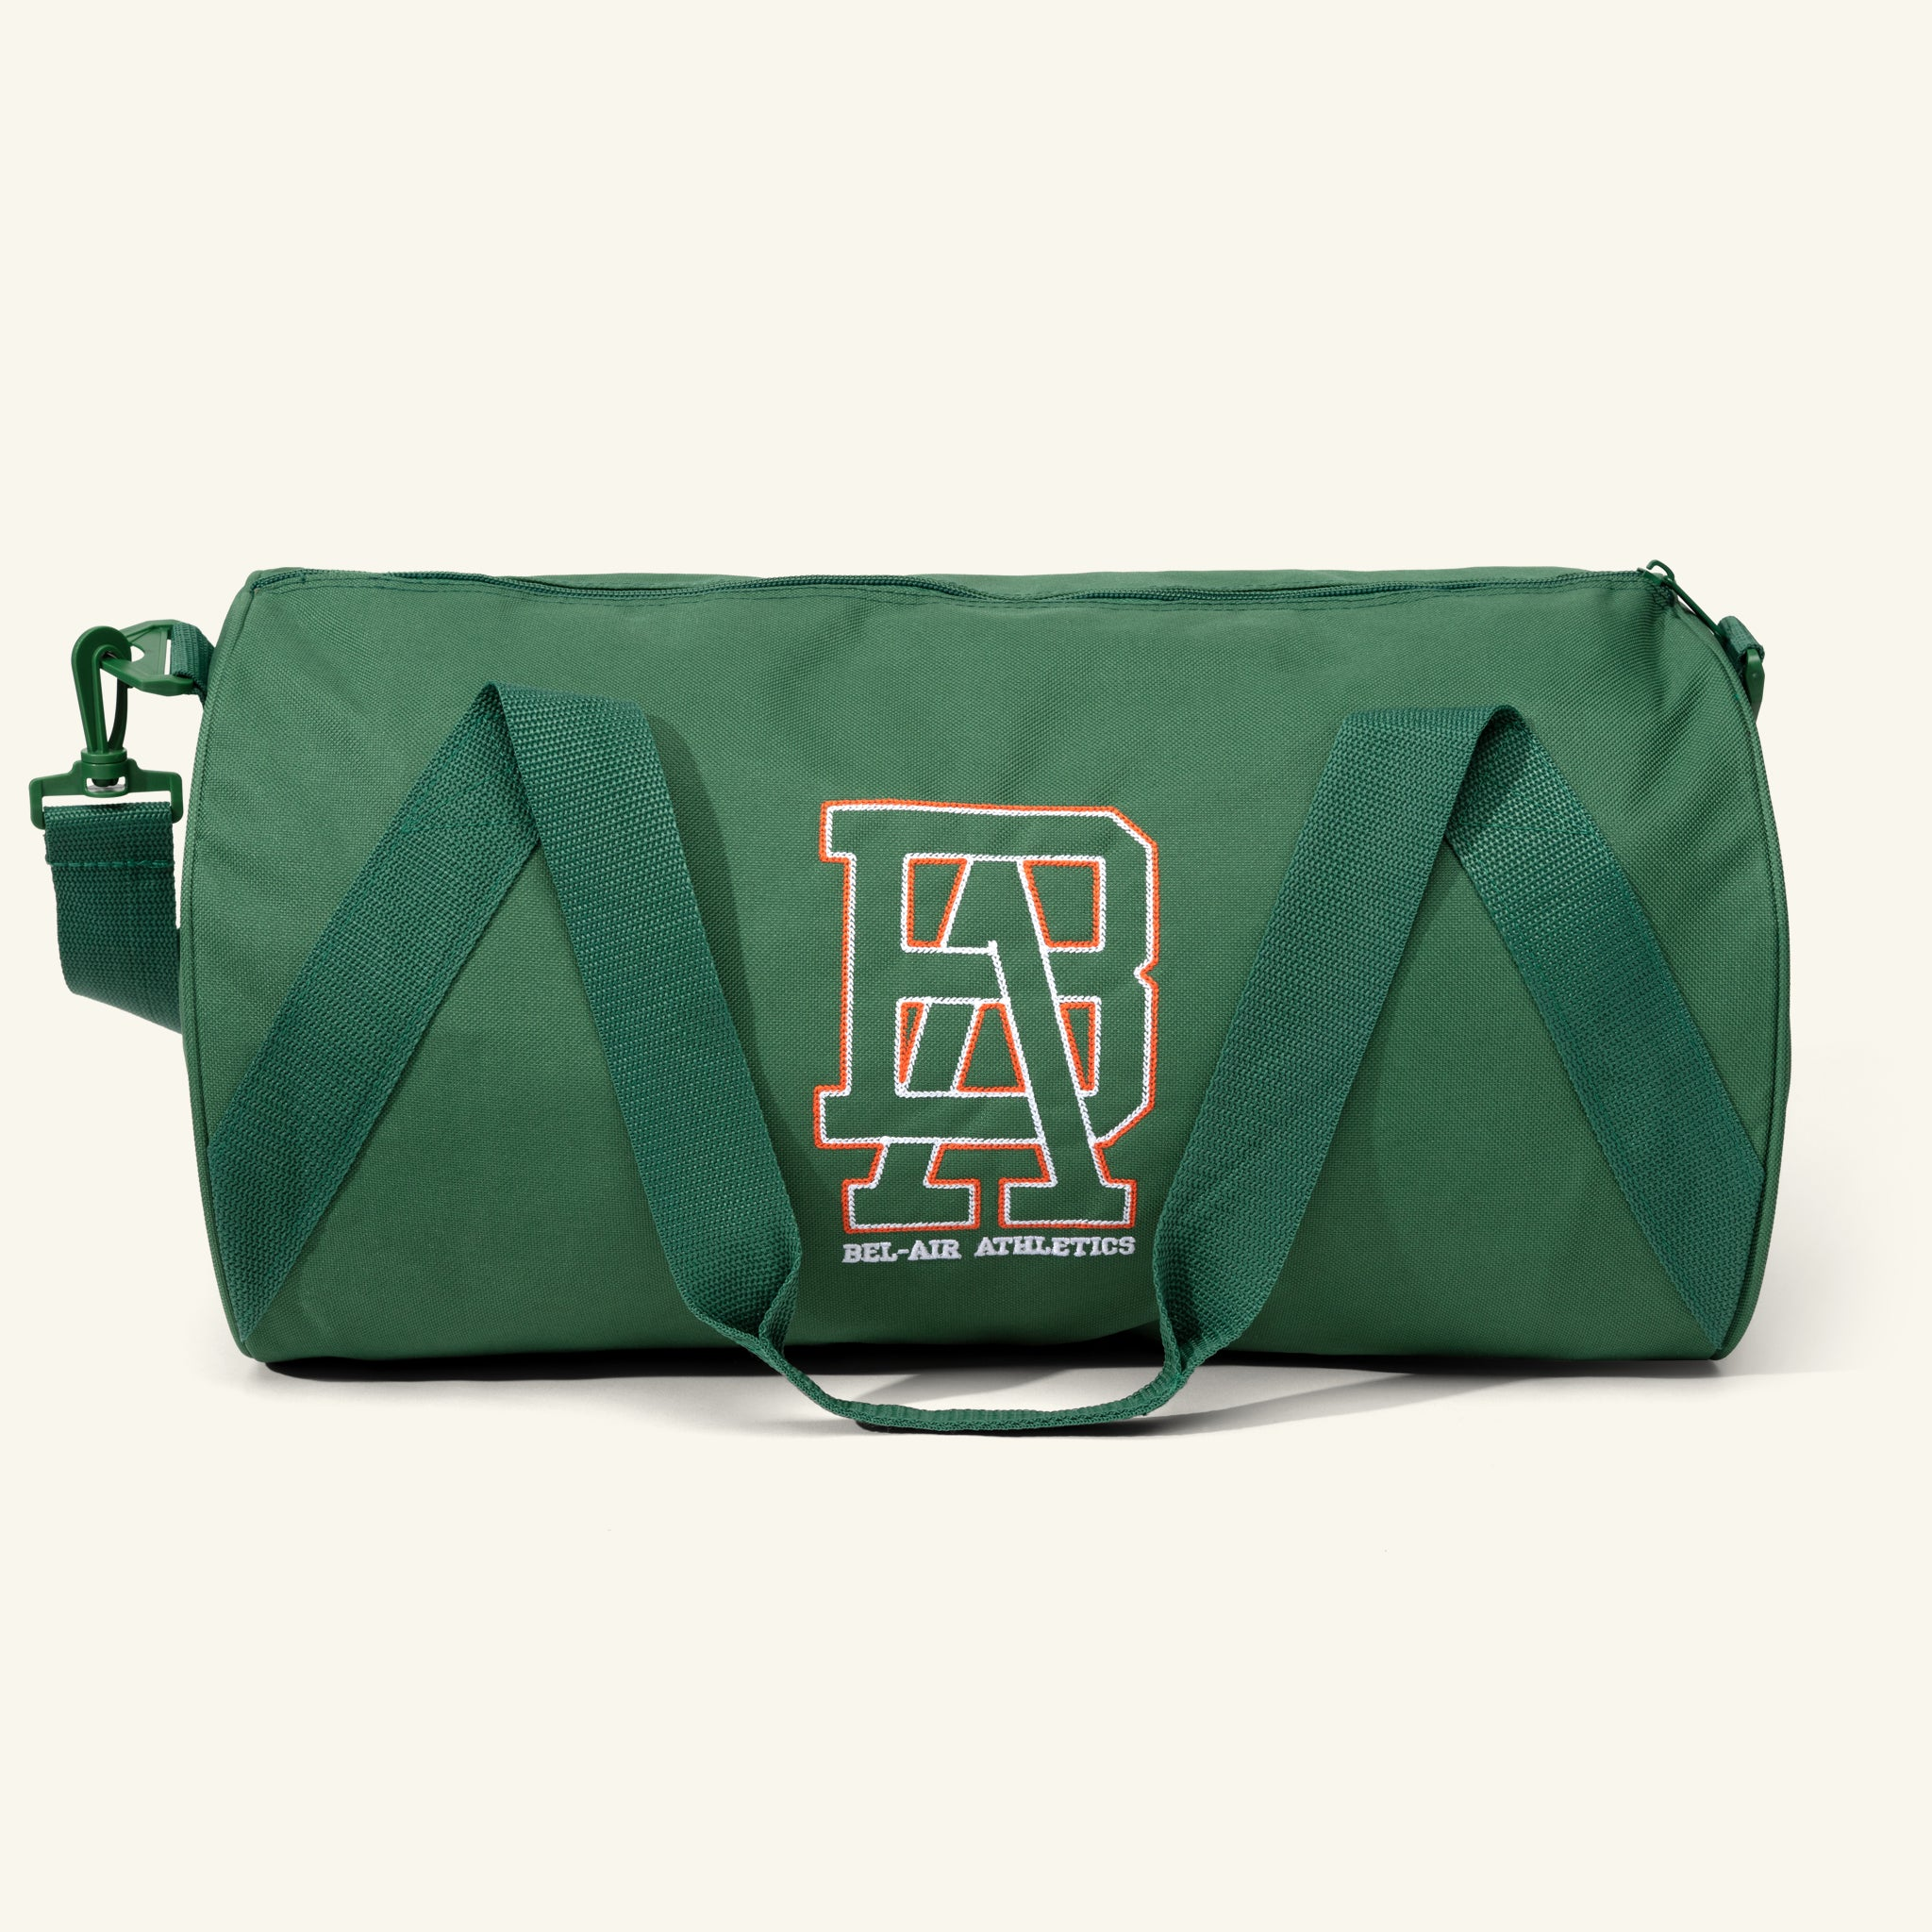 Monogram Duffel Bag, Green